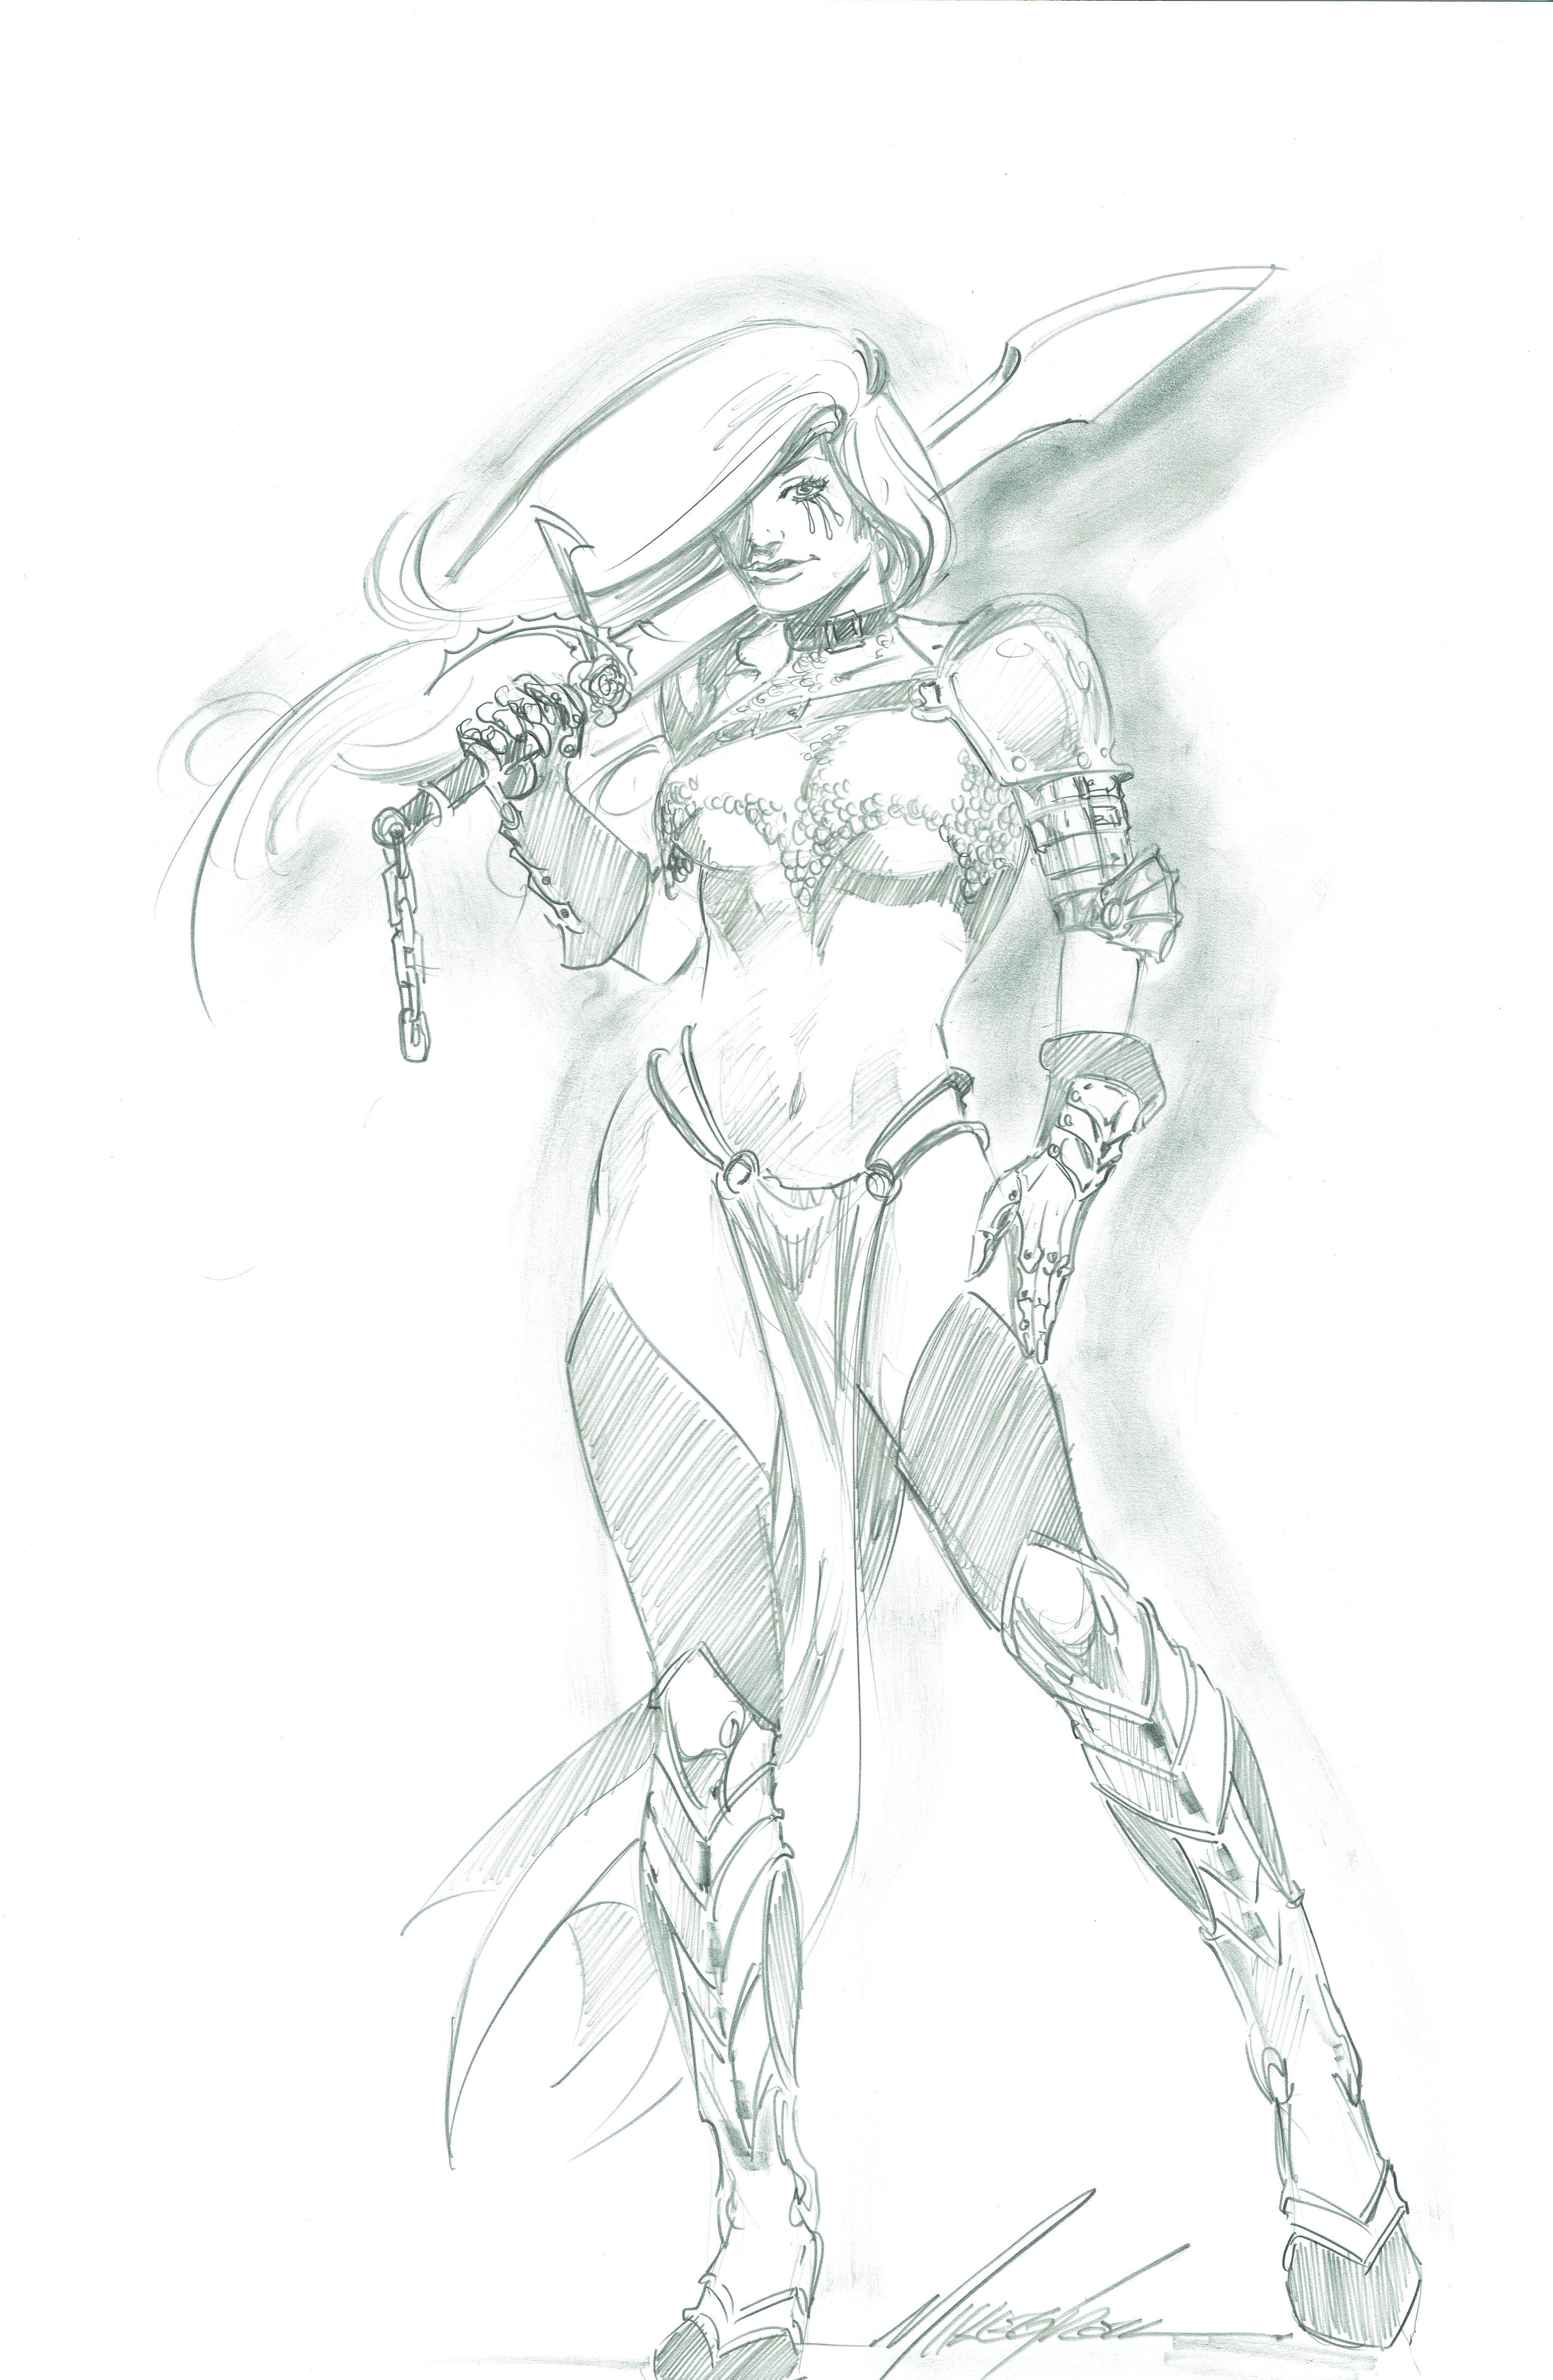 A pencil commission of J.L. Linsner's Dawn done by Mike Grell in 2015.